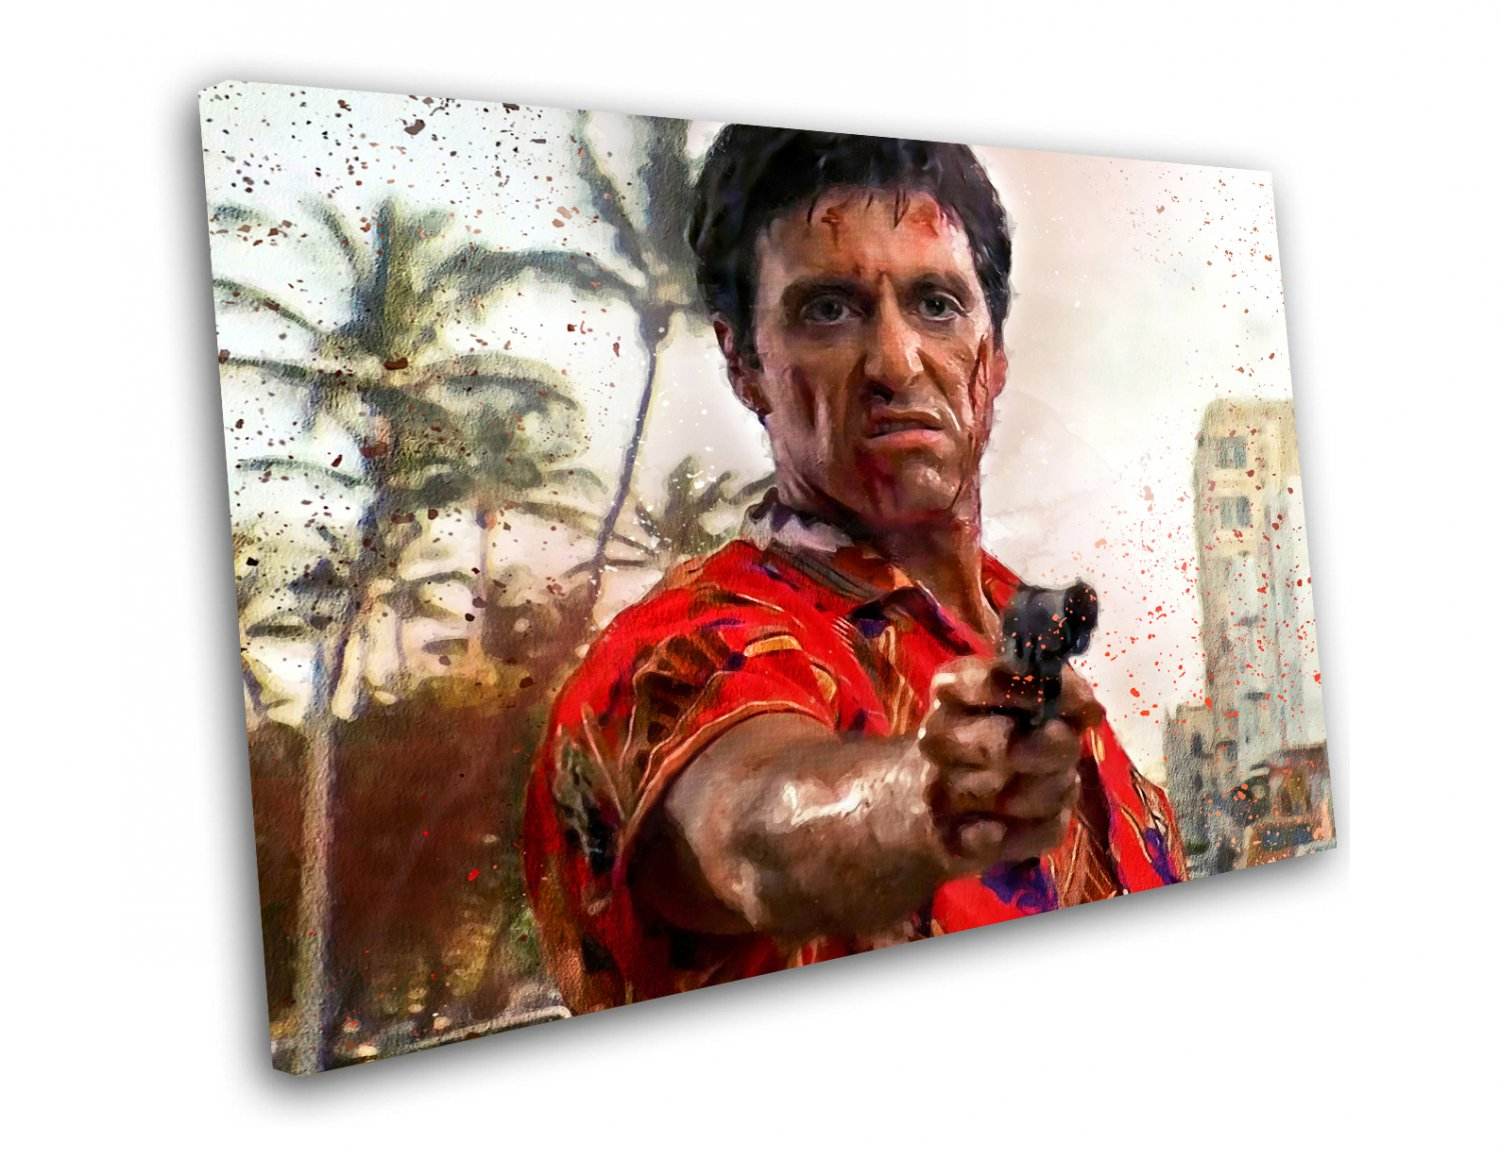 Scarface, Al Pacino, Tony Montana  14x20 inches Stretched Canvas